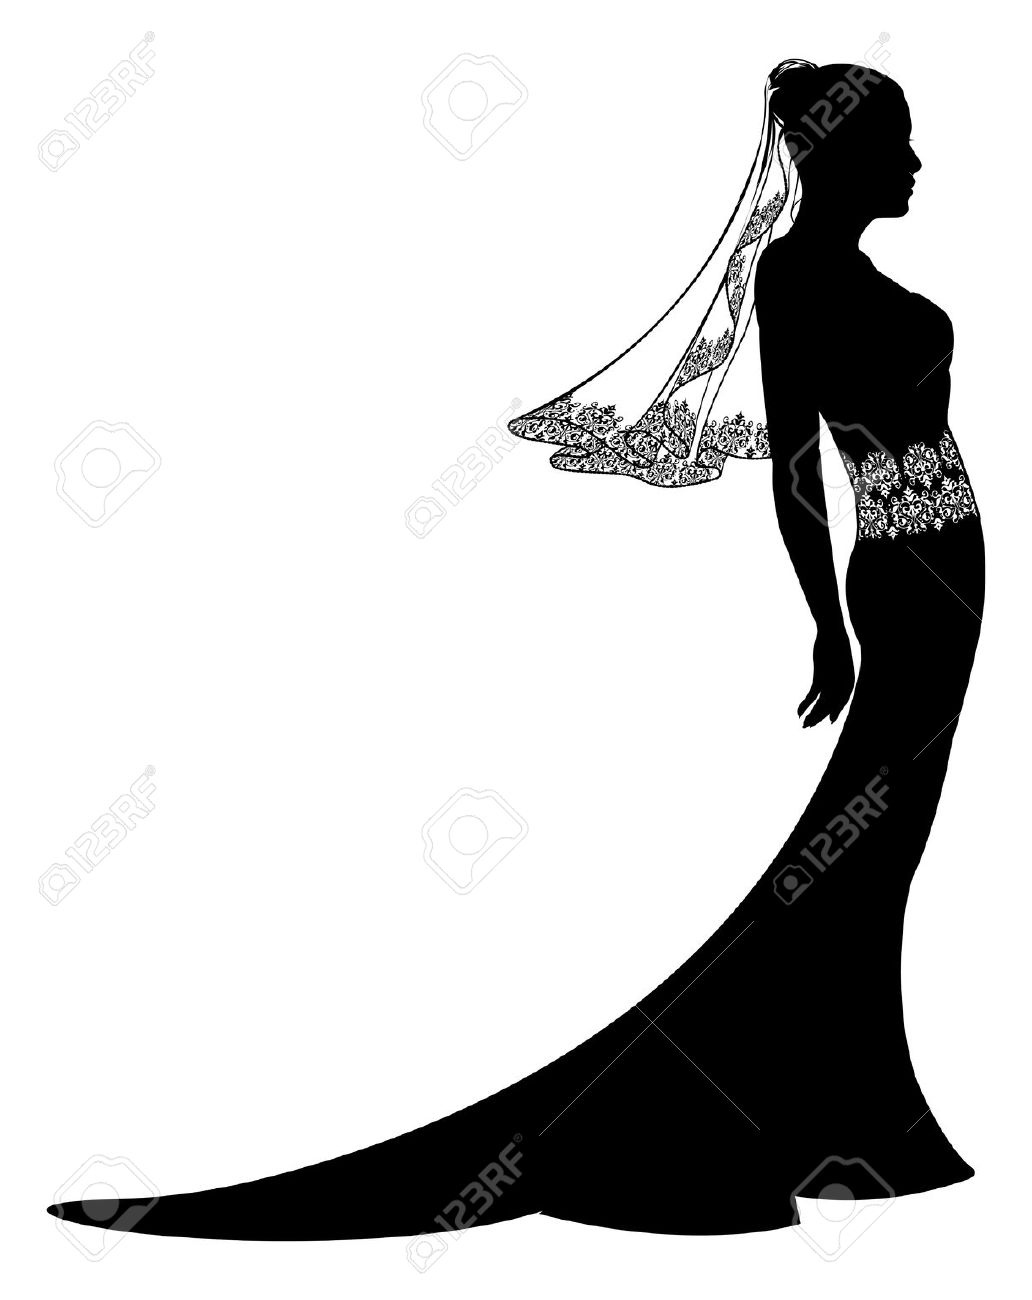 6,408 Wedding Dress Silhouette Cliparts, Stock Vector And Royalty.